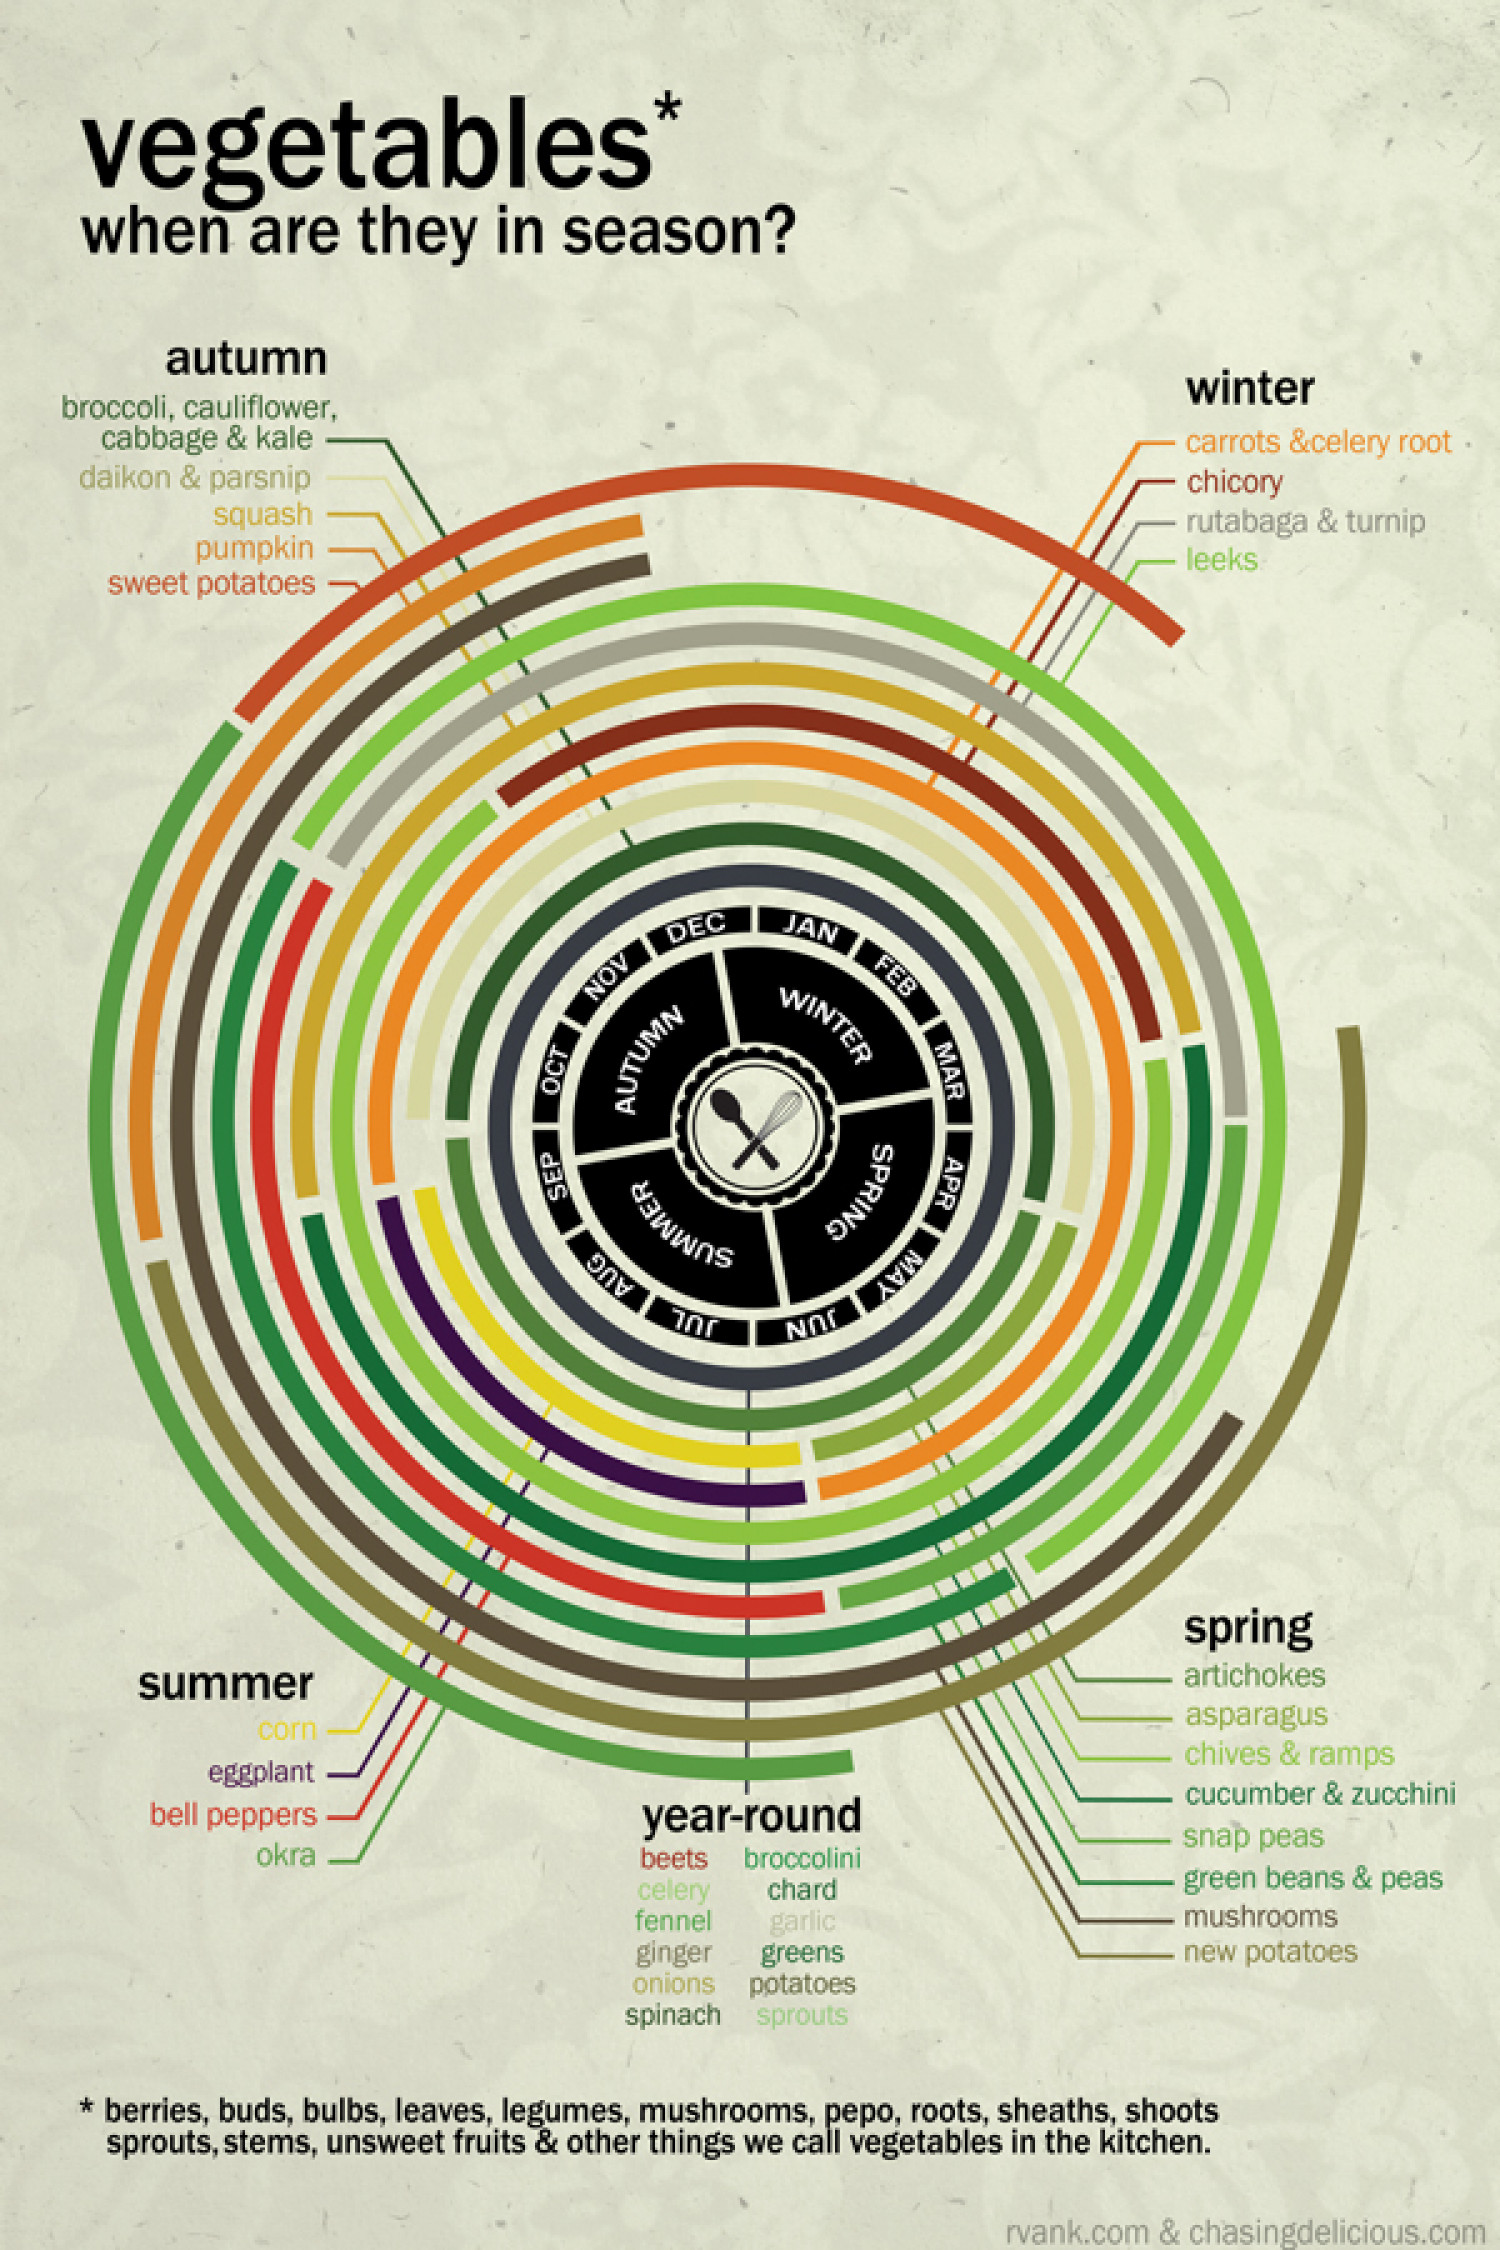 Vegetables: When Are They in Season? Infographic